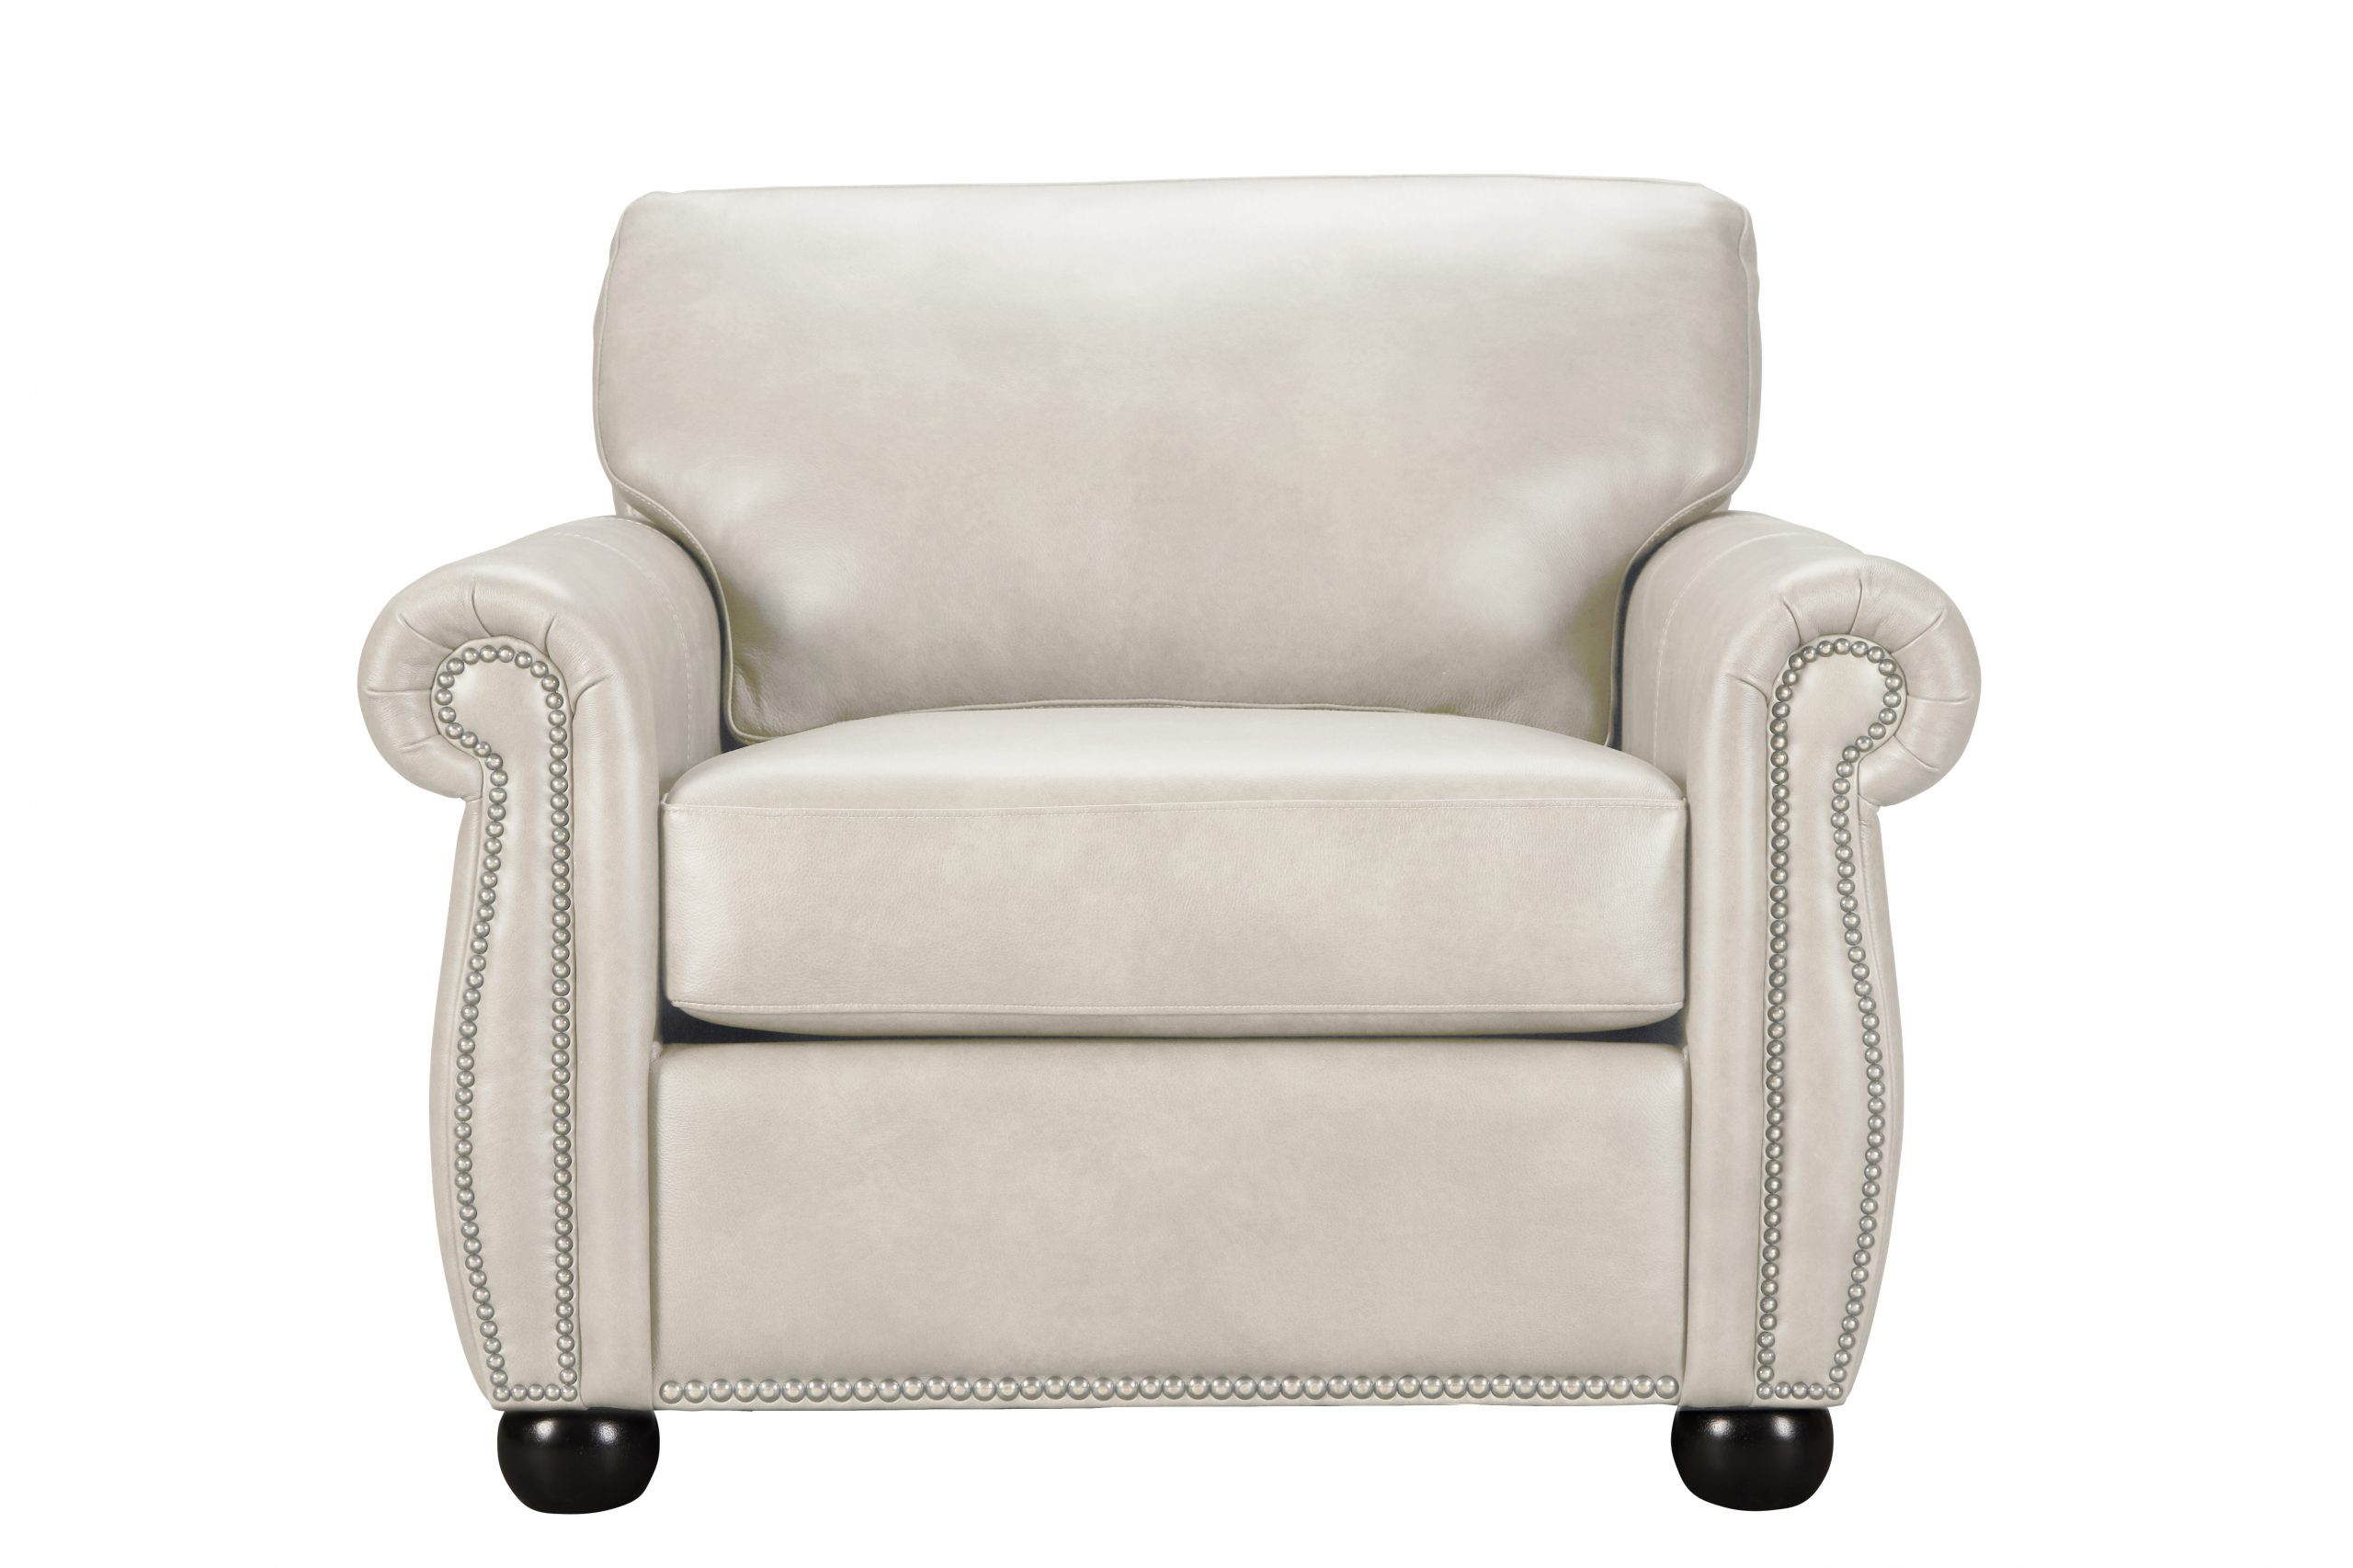 SS-204L-Chair-Softsations-Winter-White-SL-121918_1